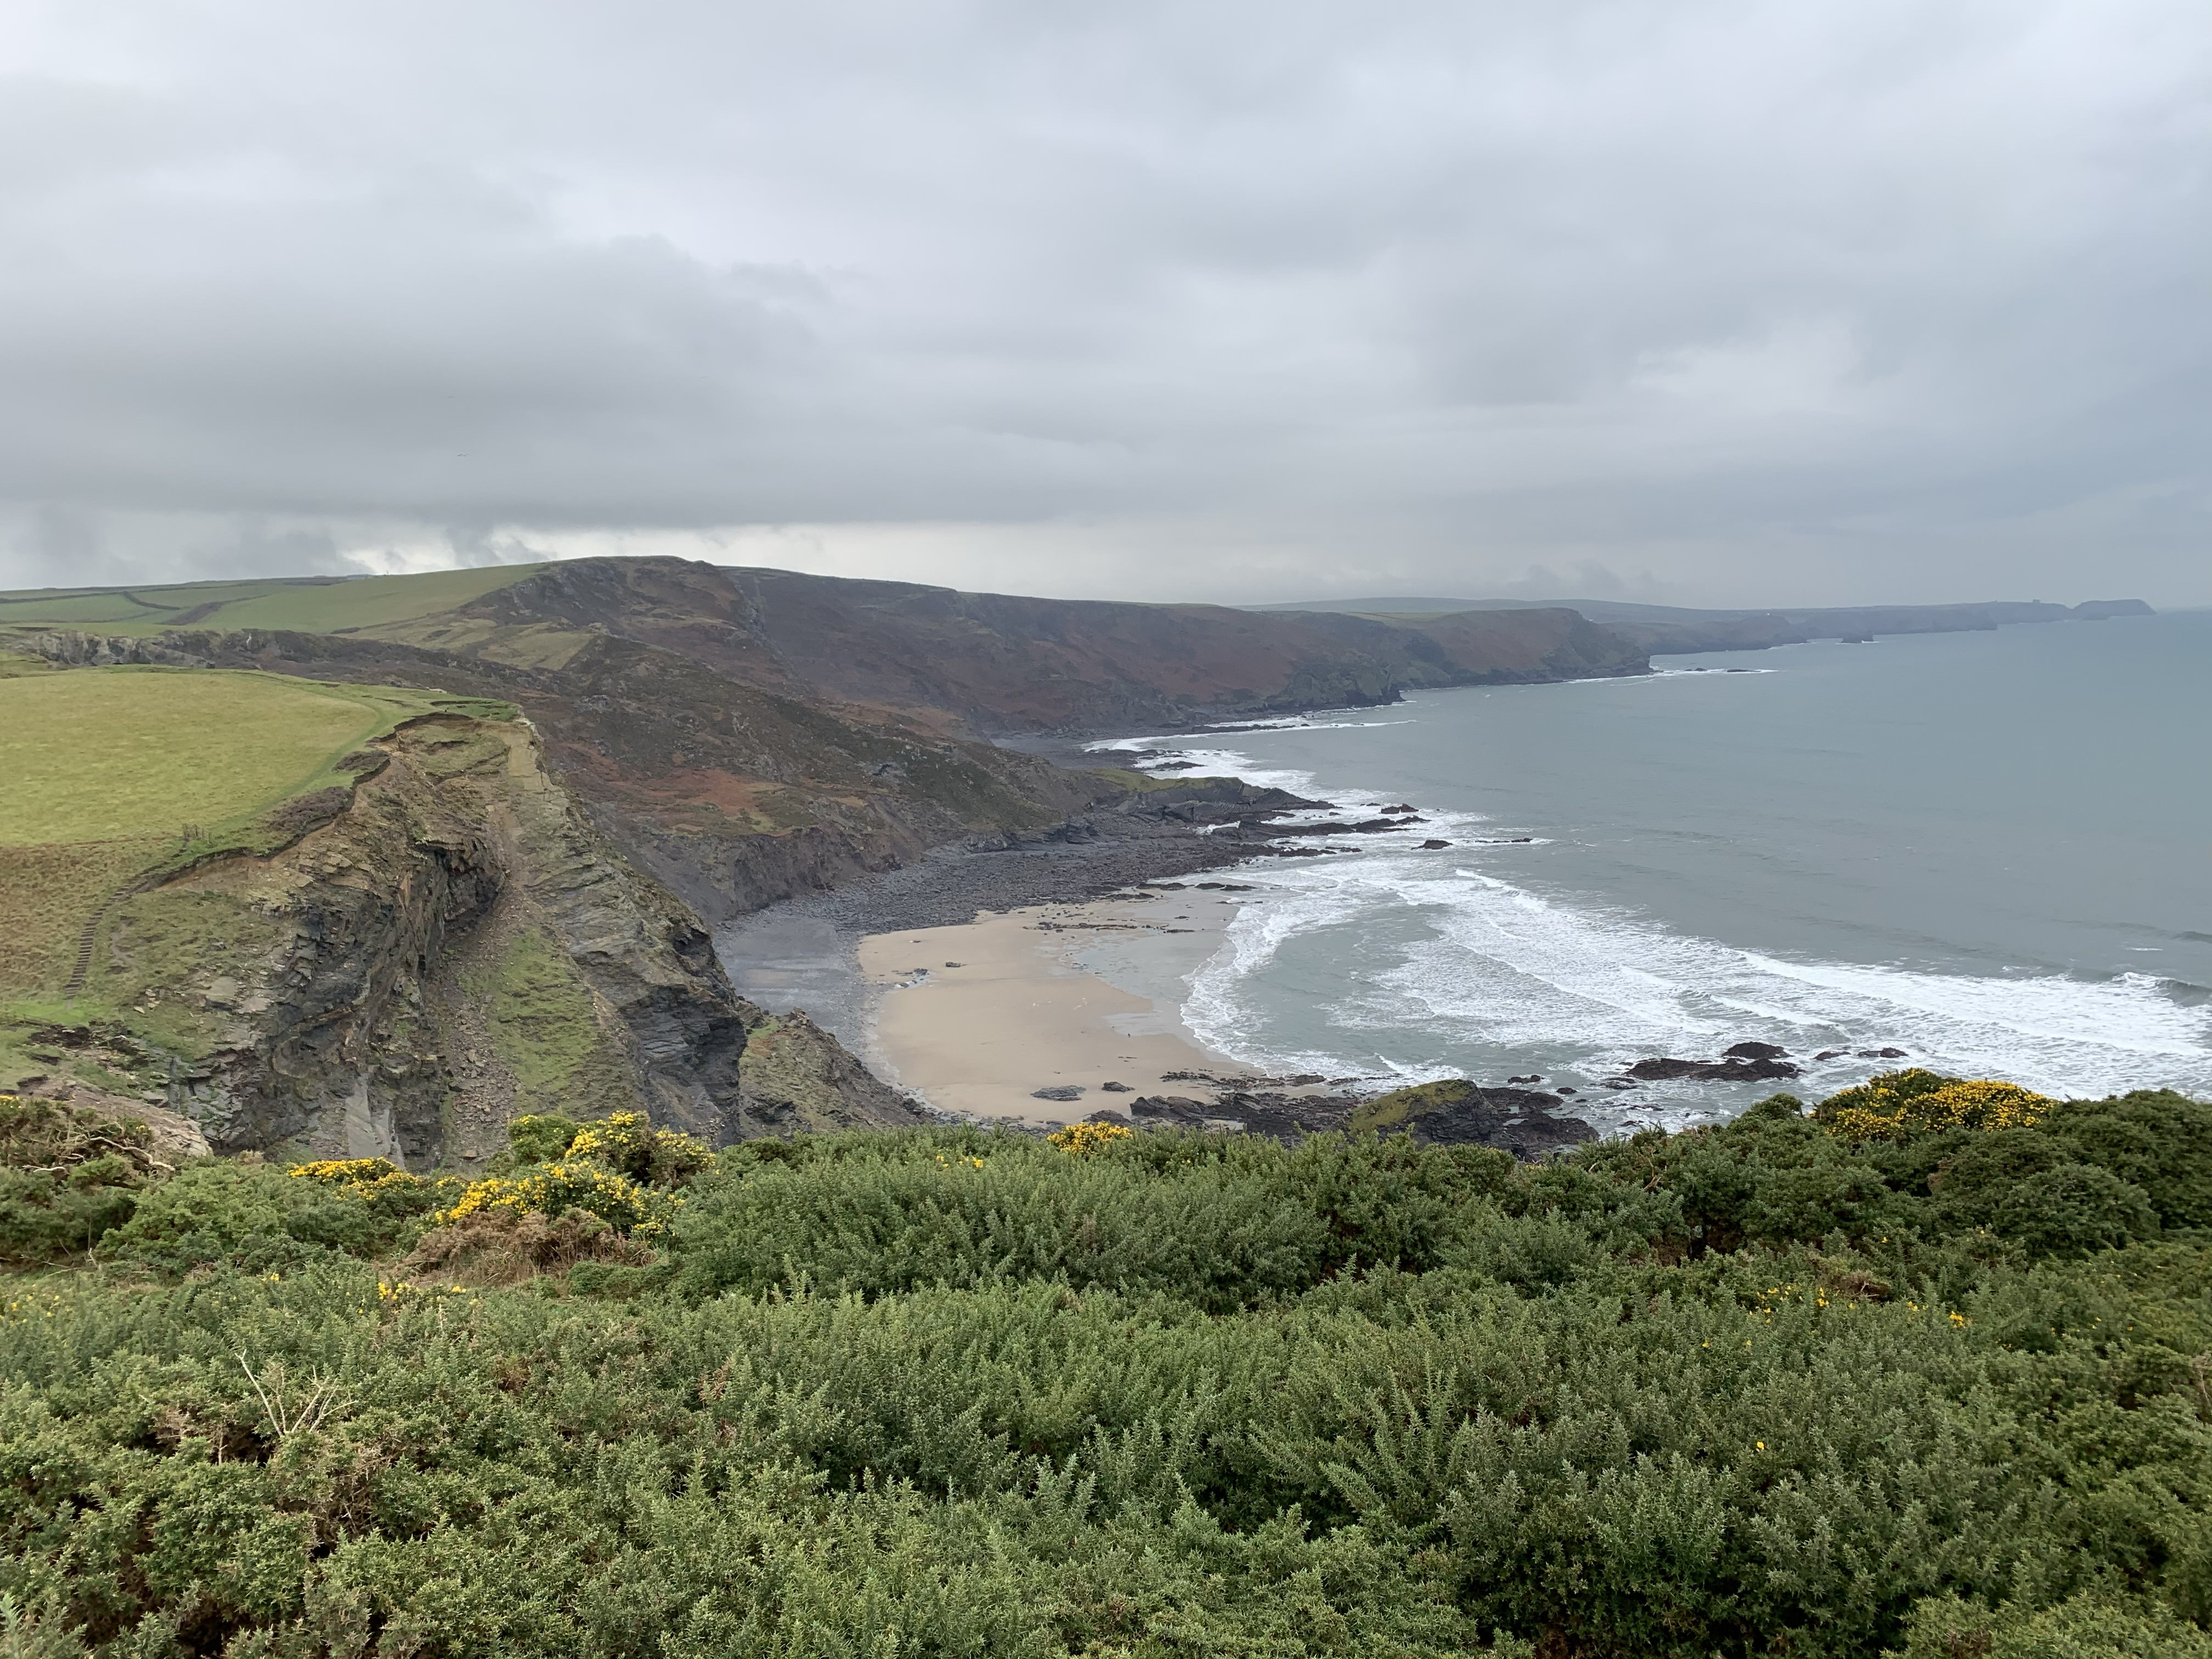 Walking The South West Coast Path from Crackington Haven to Boscastle while staying at Gwelmor in Widemouth Bay